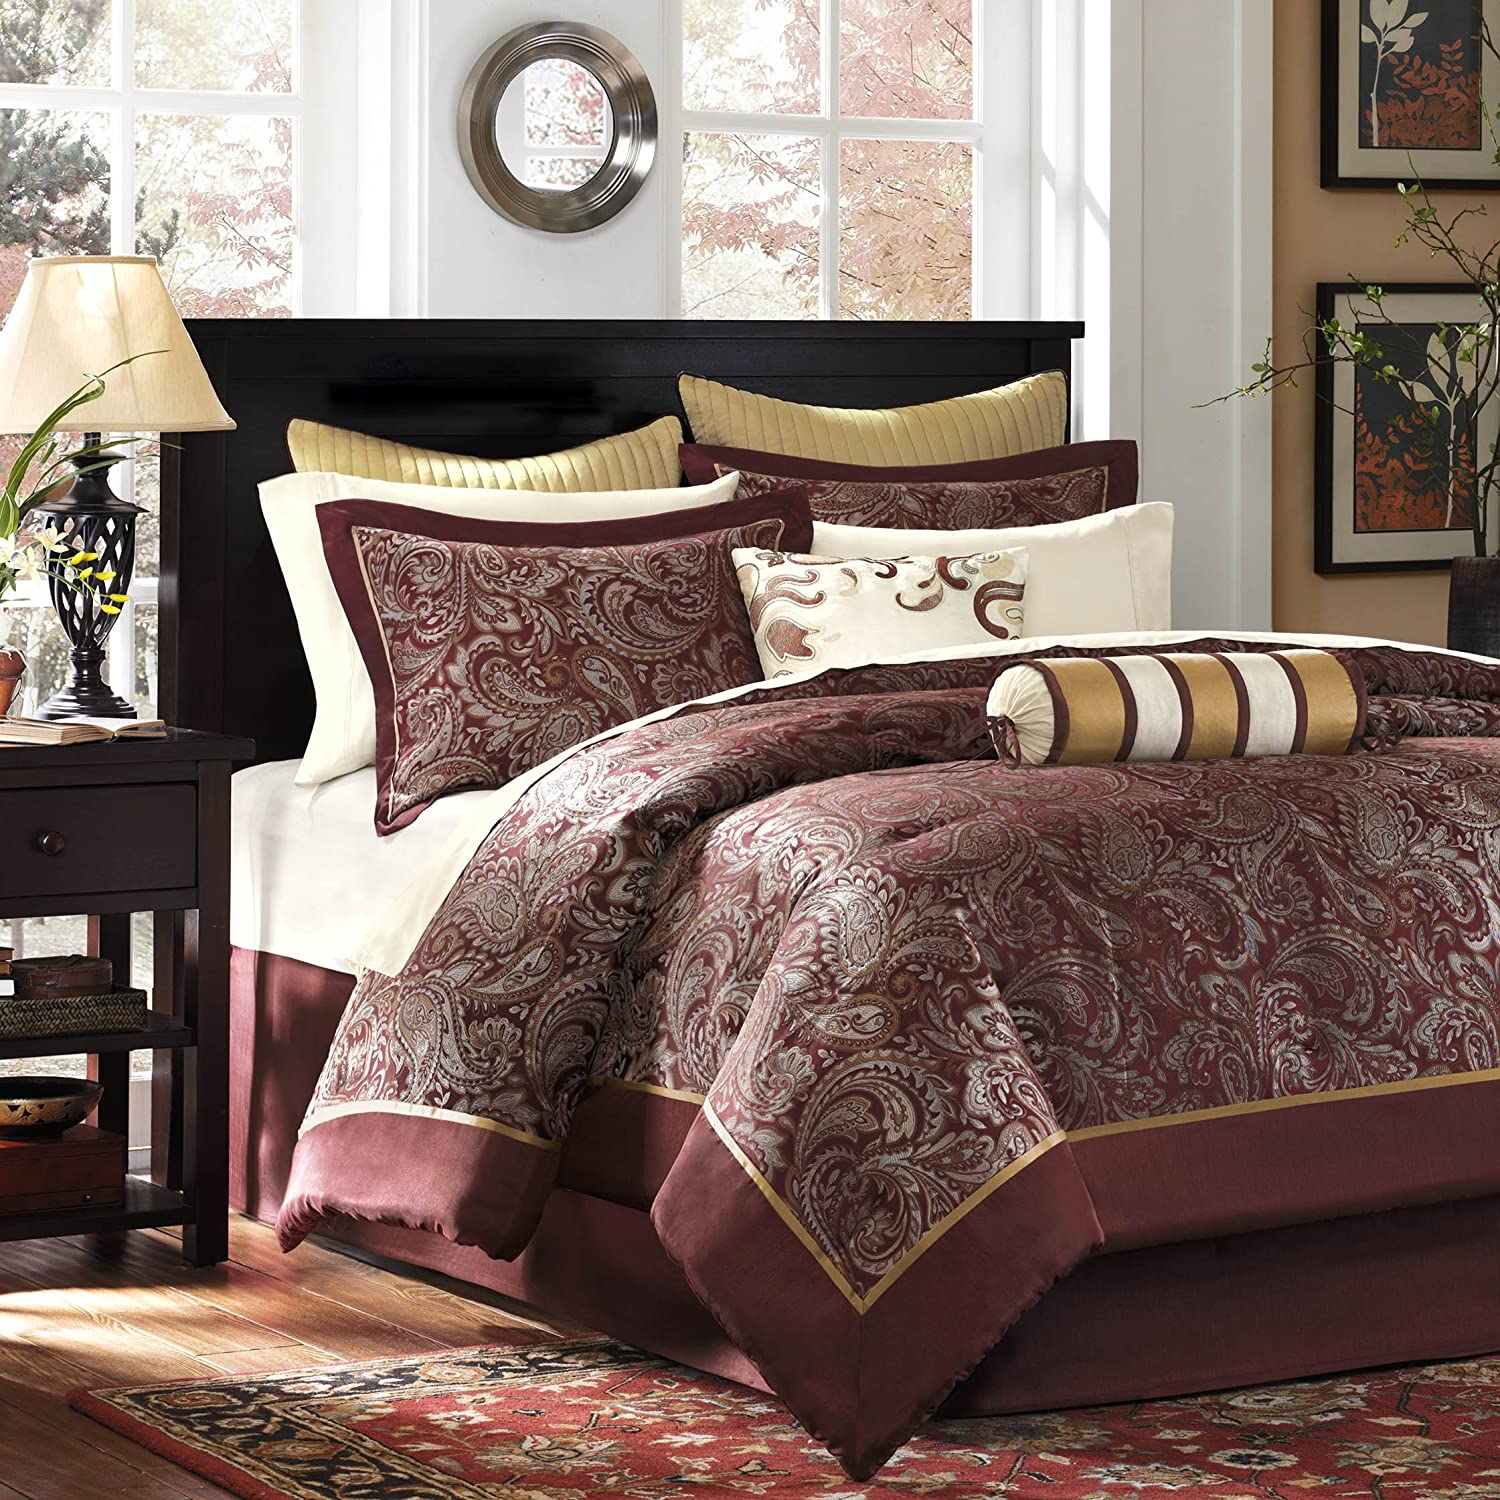 Madison Park Aubrey 12 Piece Jacquard Comforter Set, King, Burgundy